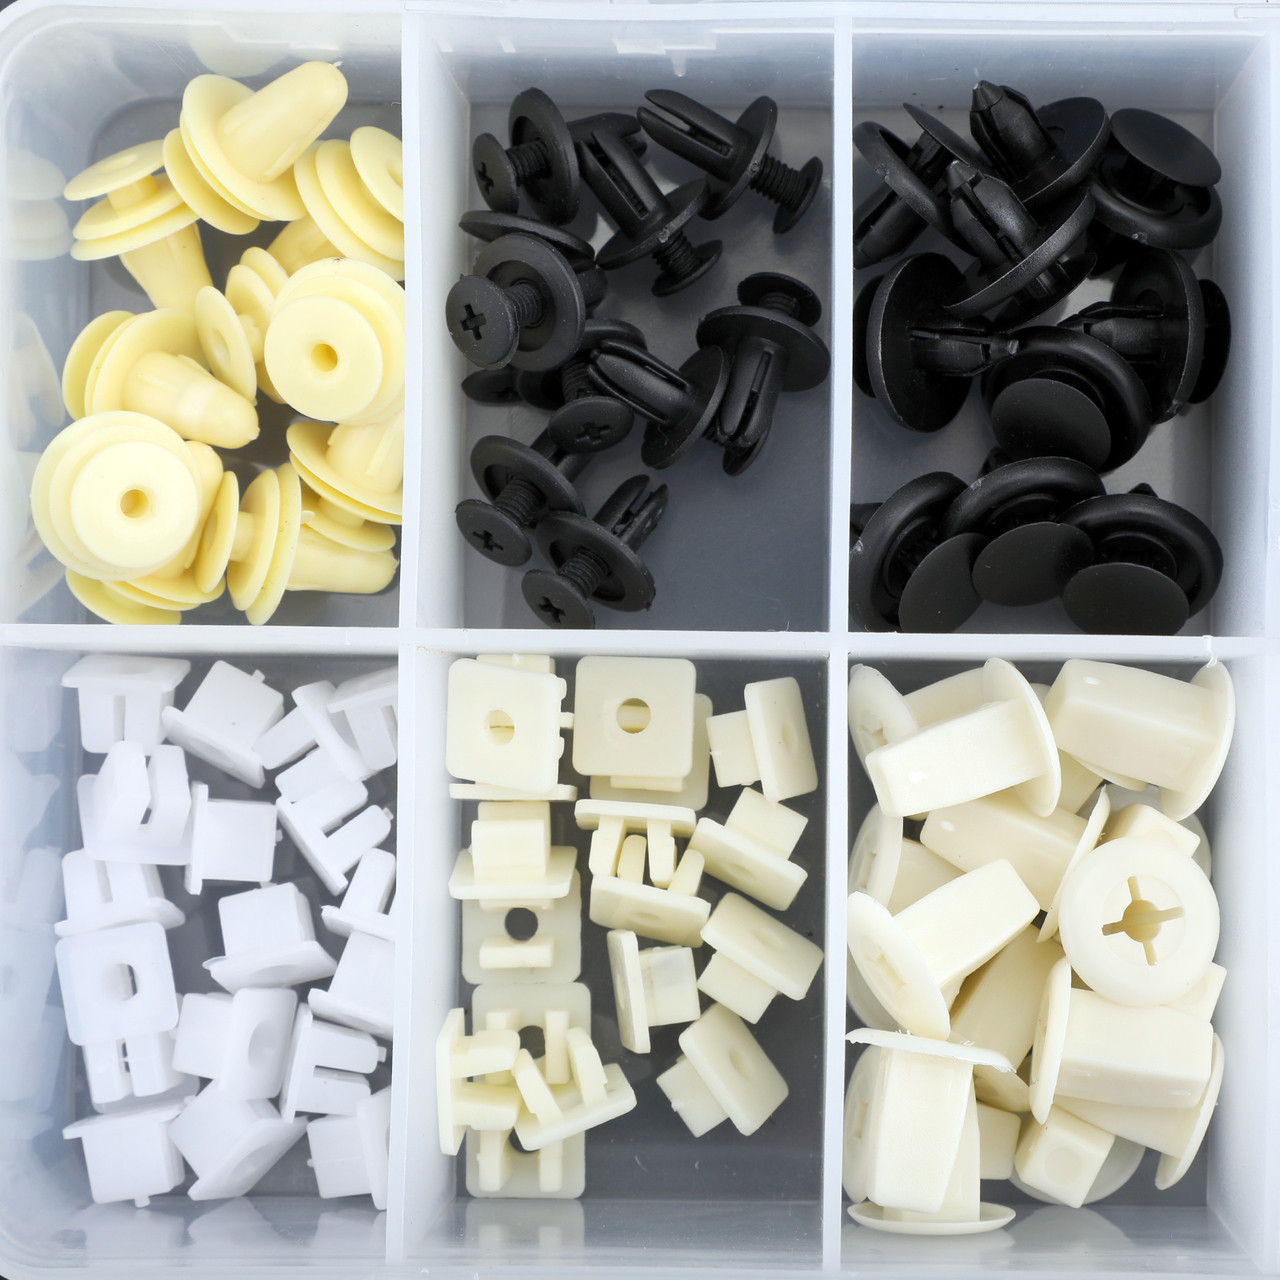 435 Pcs Hood Door Lock Rod Fender Liner Clip Nut Retainer Assortment For Toyota